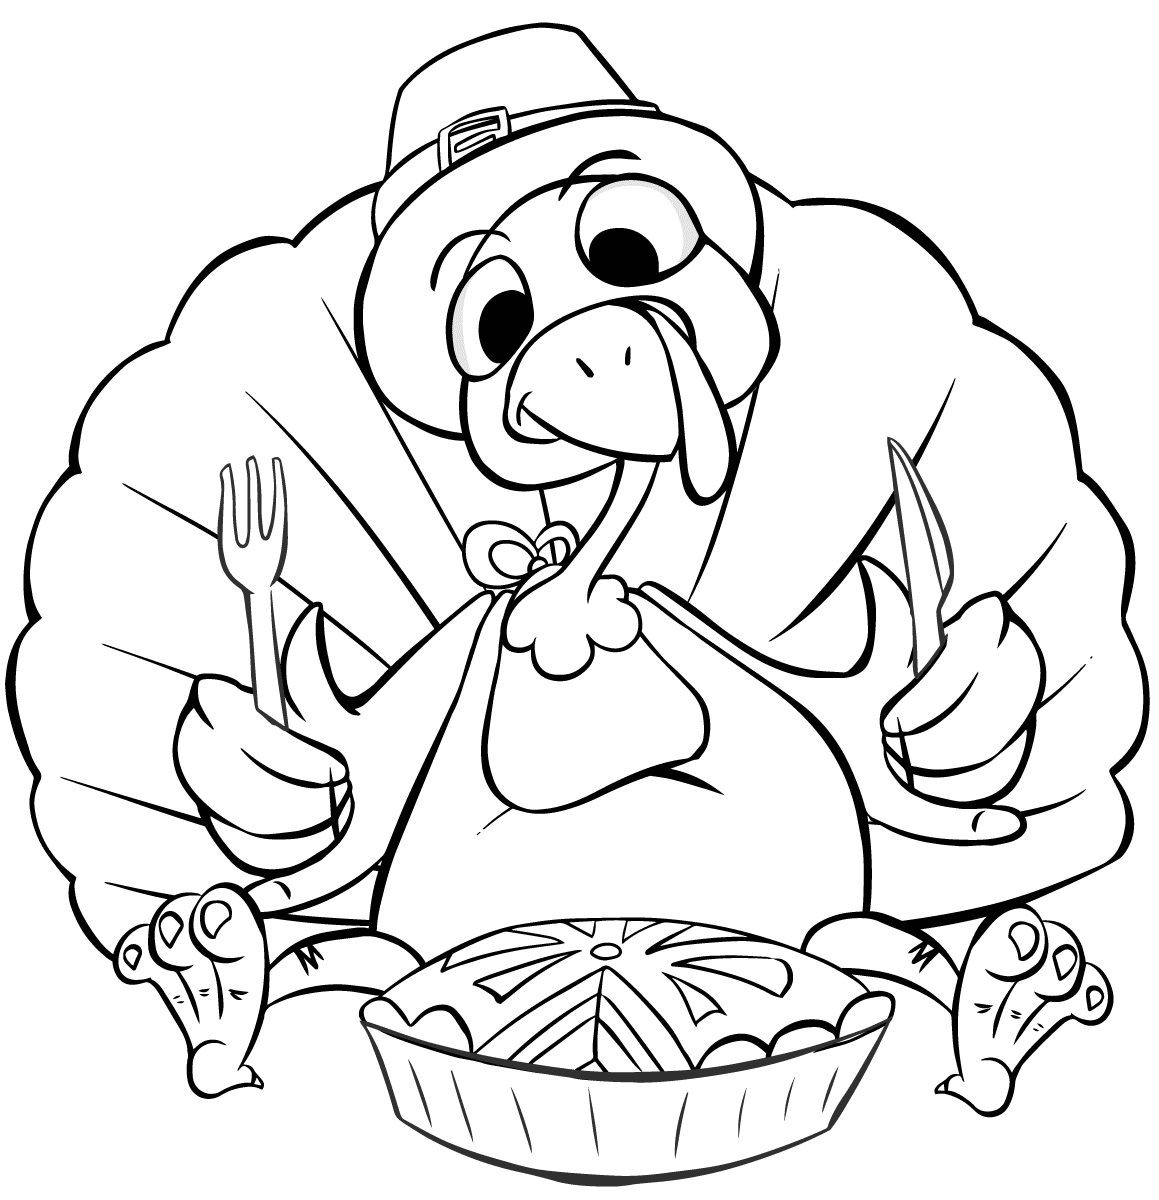 1159x1200 Thanksgiving Dinner Coloring Pages Printables Family Feast